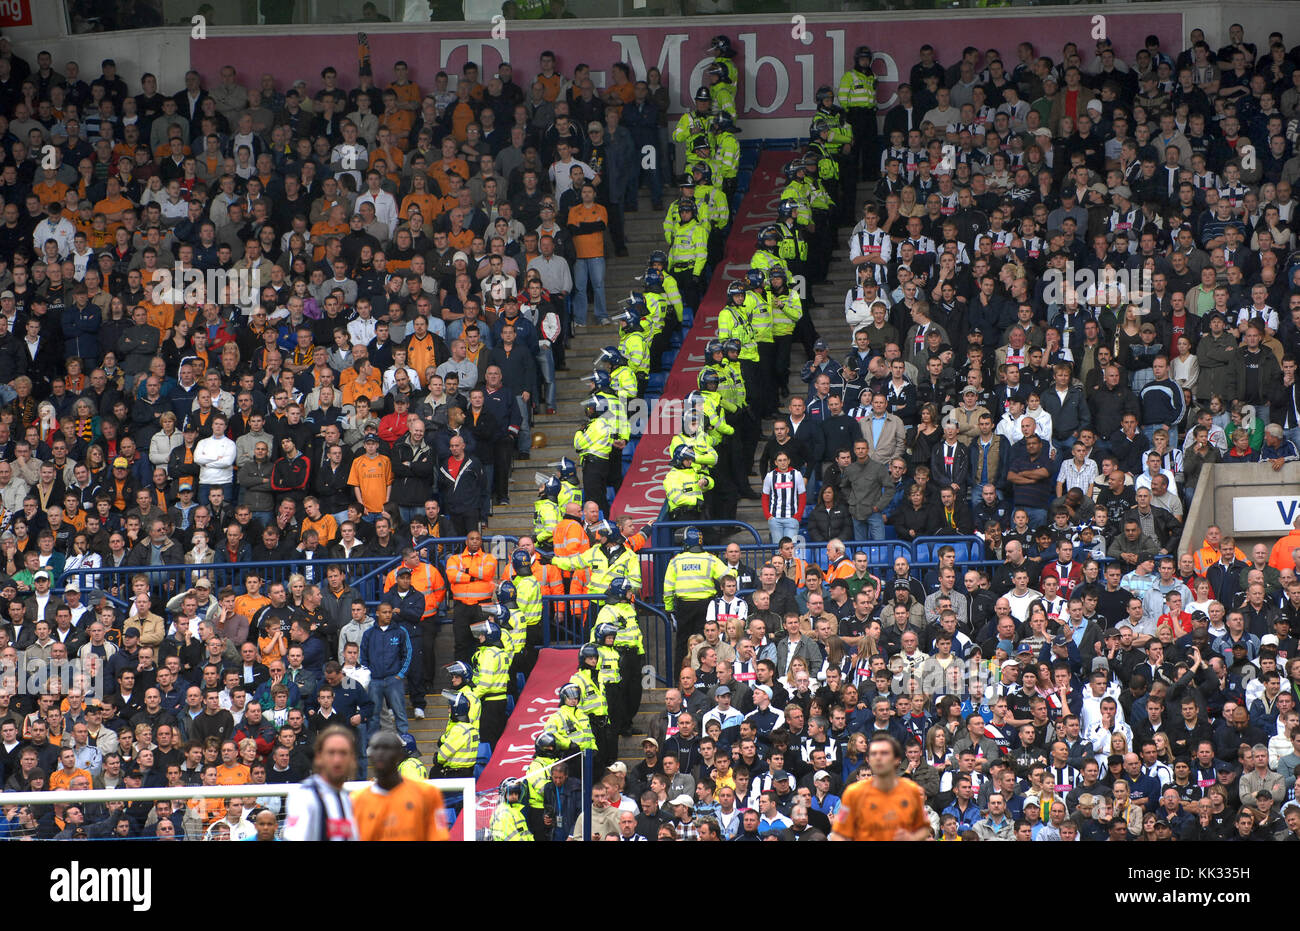 Football supporters segregated by police officers at West Bromwich Albion v Wolverhampton Wanderers match 2006 - Stock Image